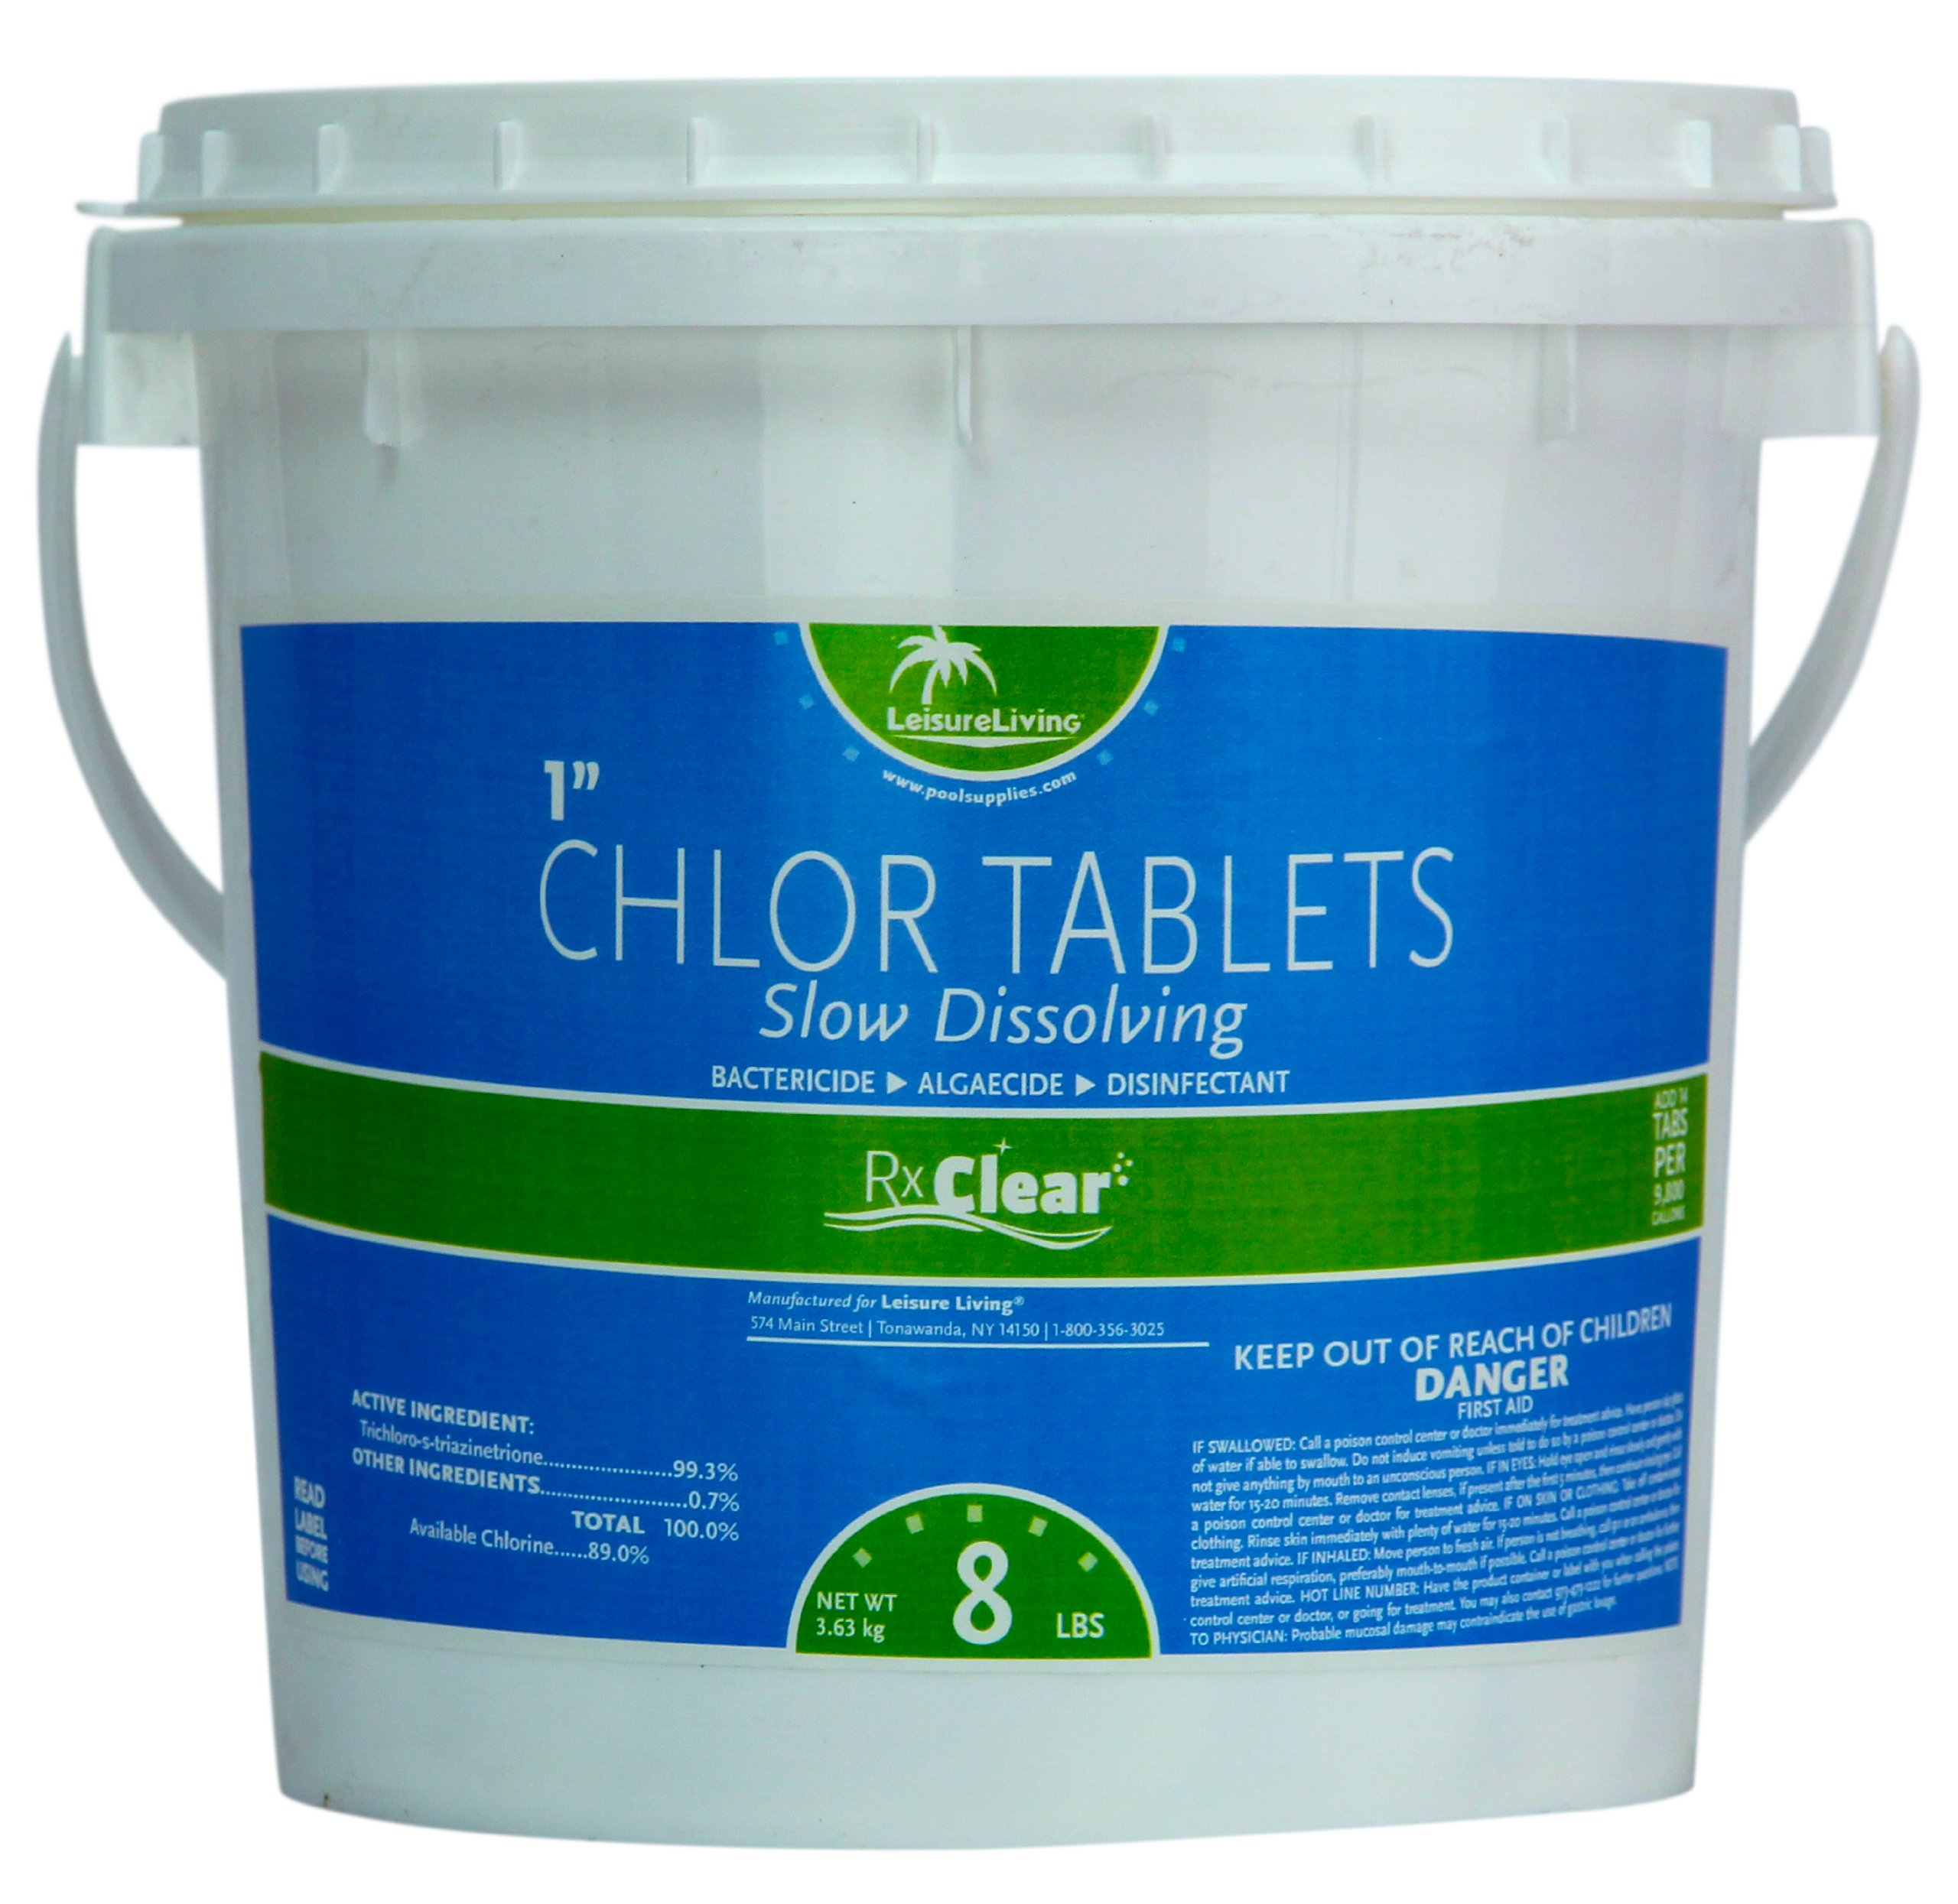 Rx Clear 1-Inch Stabilized Chlorine Tablets | One 8-Pound Bucket | Use As Bactericide, Algaecide, and Disinfectant in Swimming Pools and Spas | Slow Dissolving and UV Protected by Rx Clear